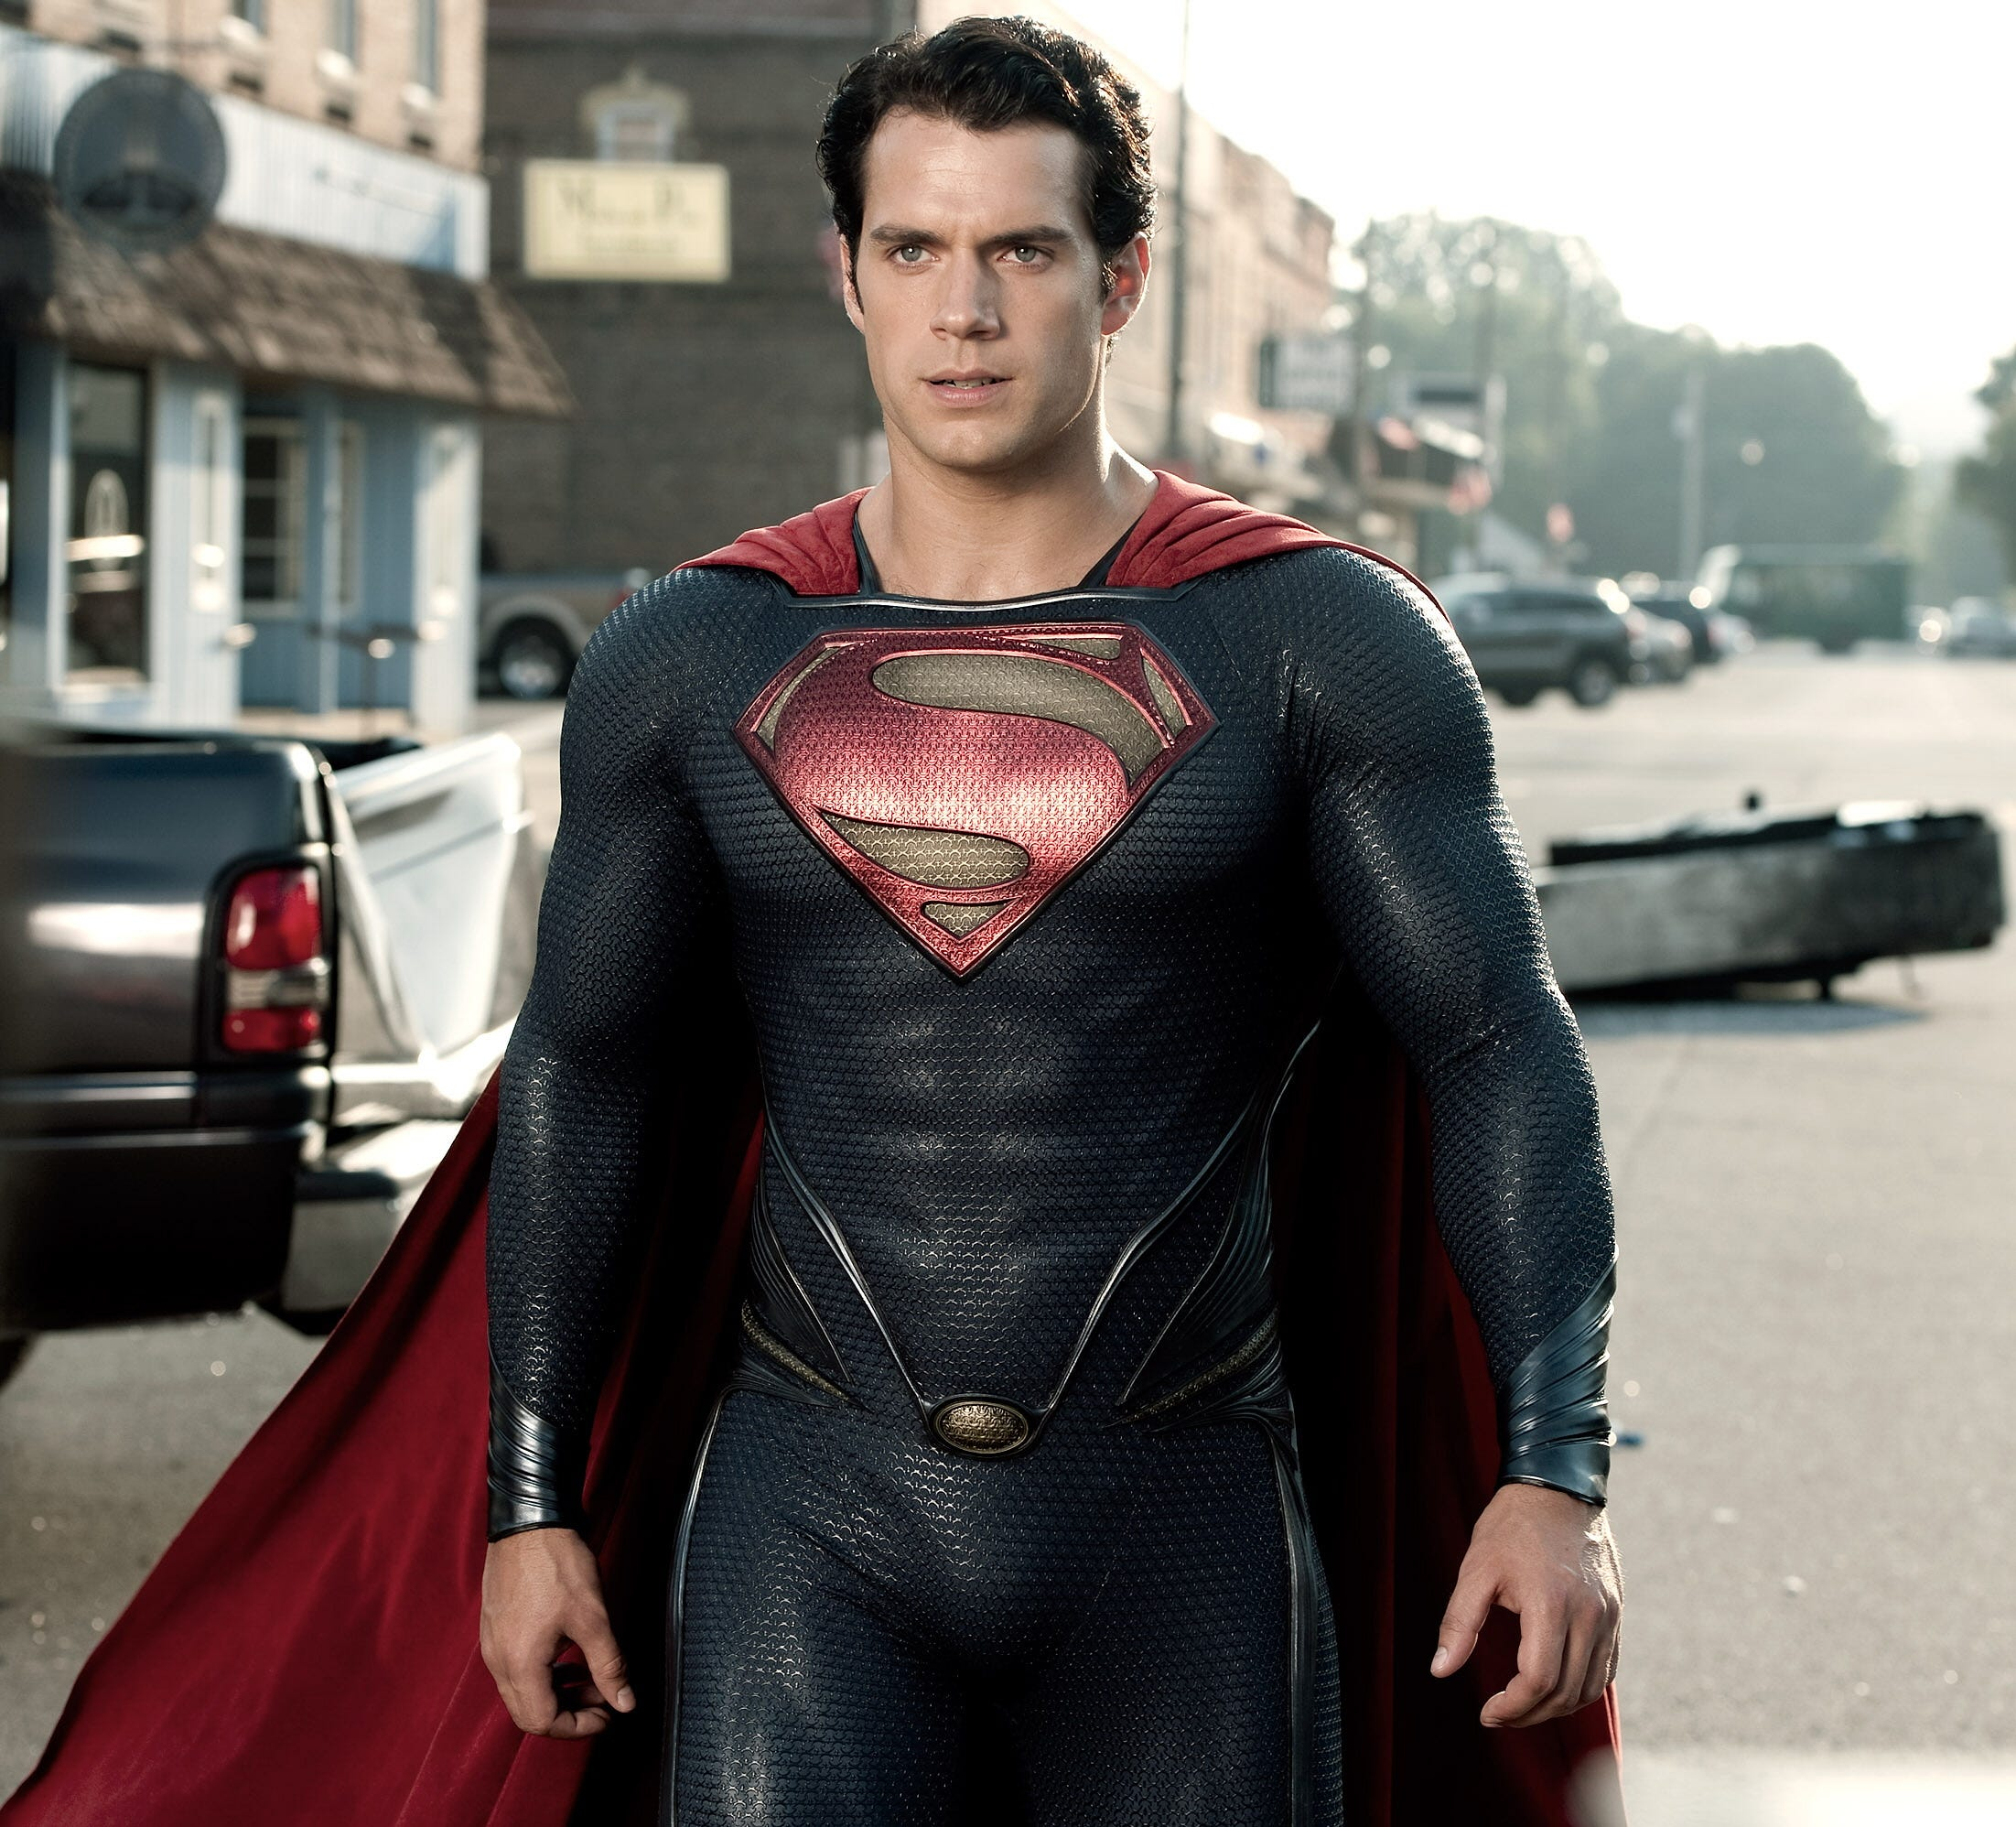 Justice League gives us a Superman worthy of the Man of Steels name